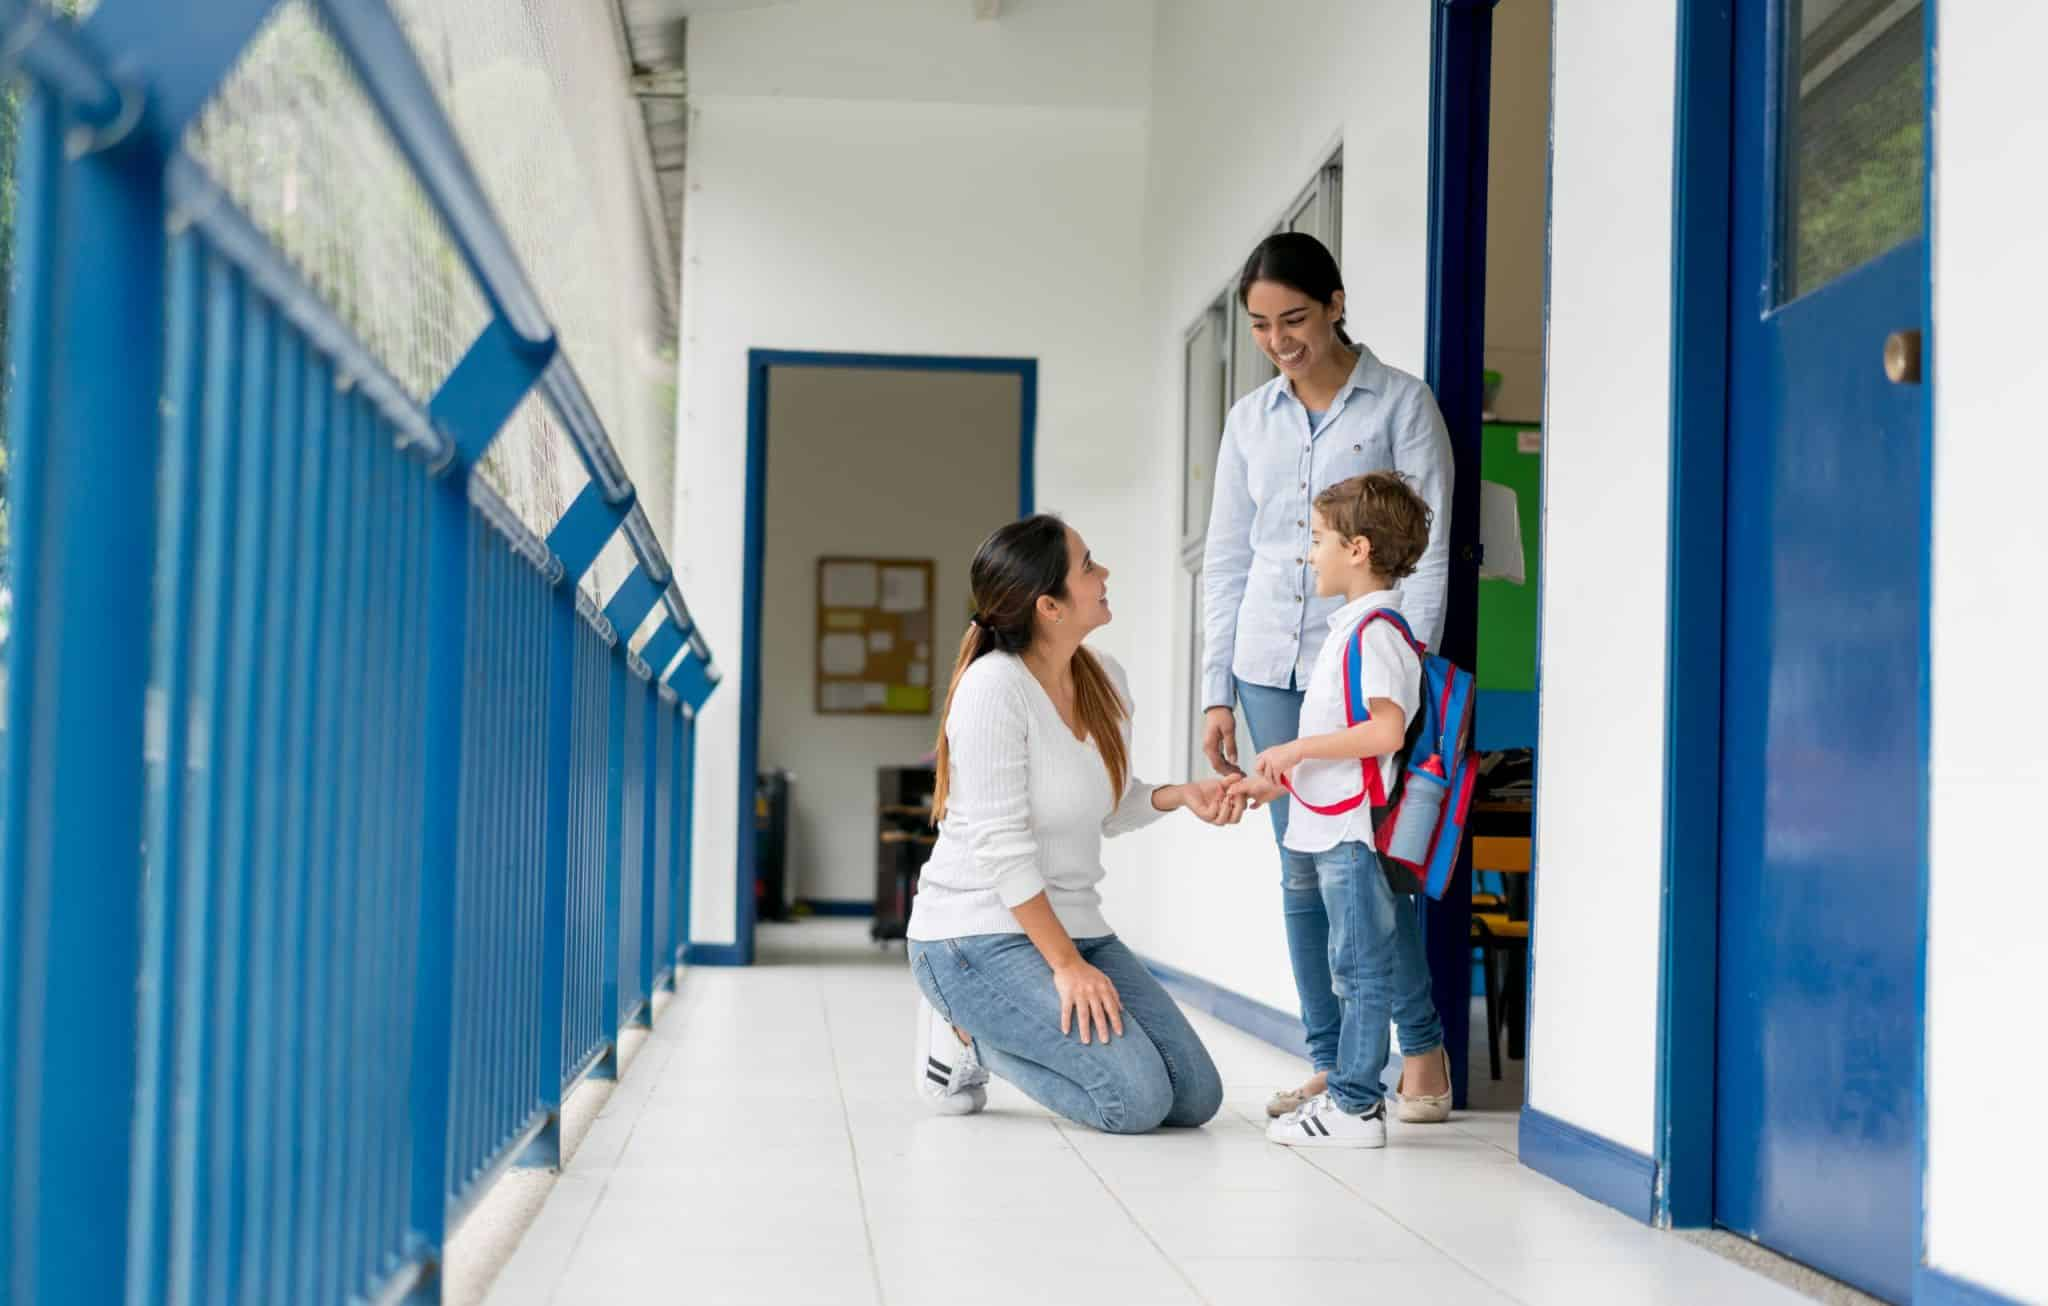 A mother and child welcomed by a teacher outside of a classroom in front of blue lockers